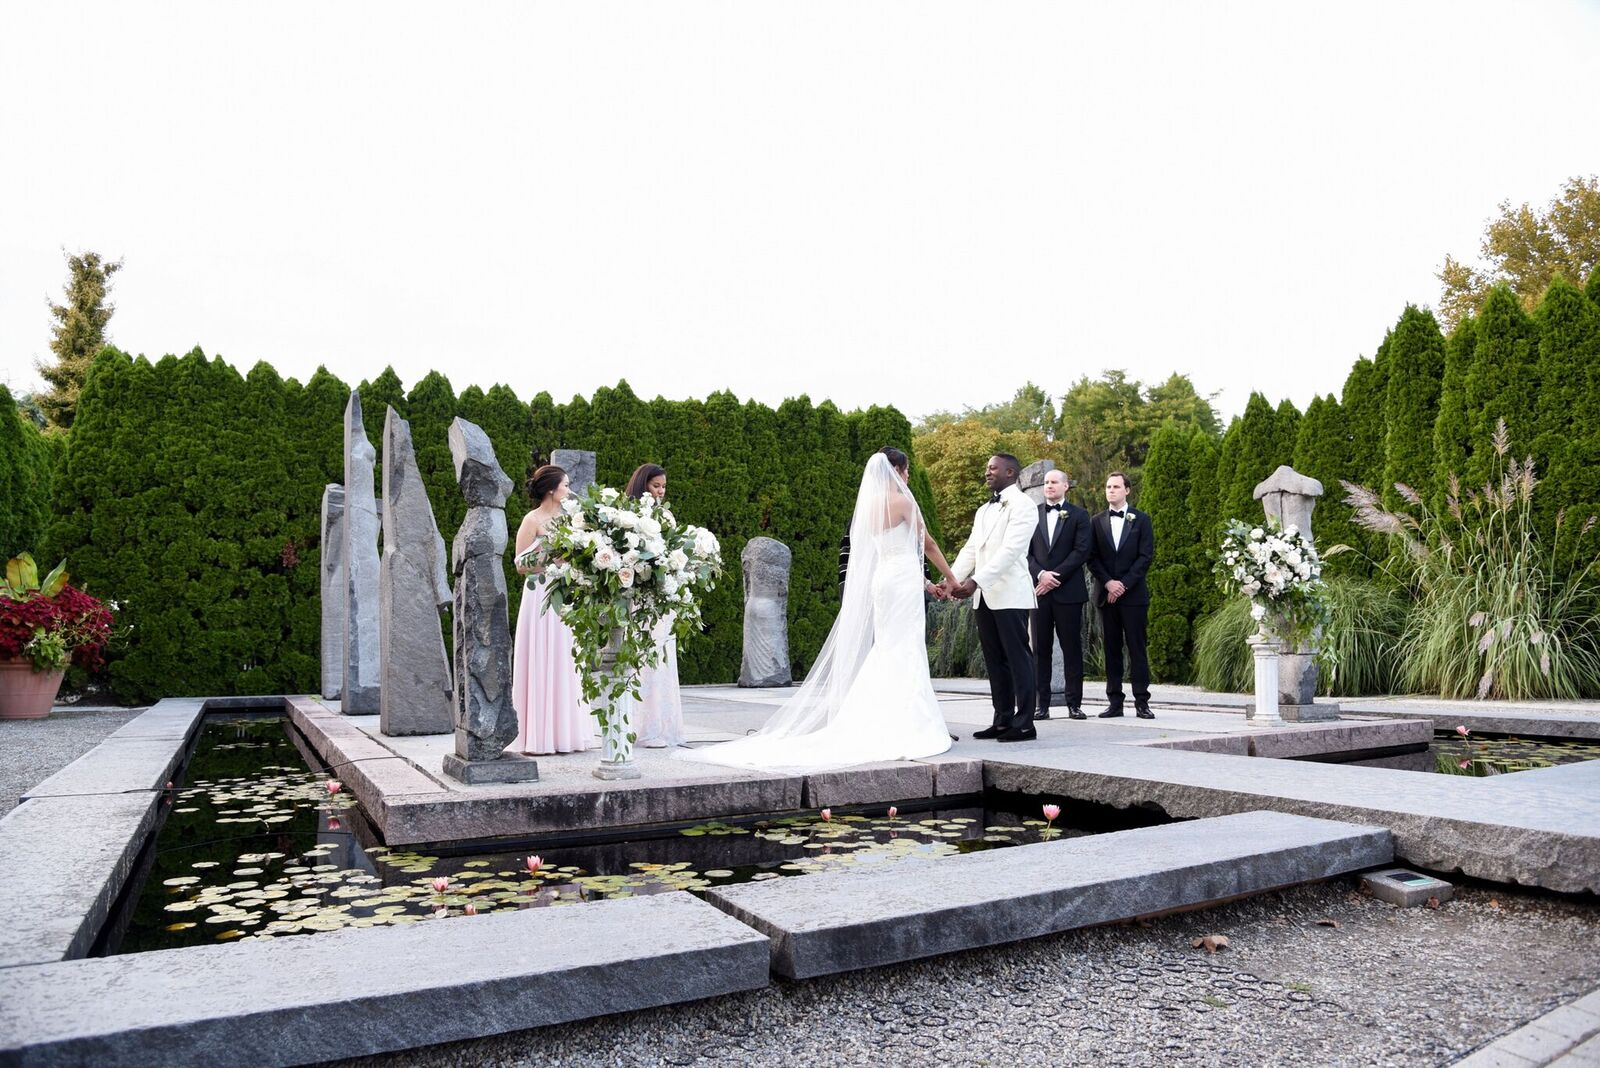 A traditional garden ceremony at Grounds for Sculpture complete with elegant and chic florals in white and green. Read more about this wedding on our blog!